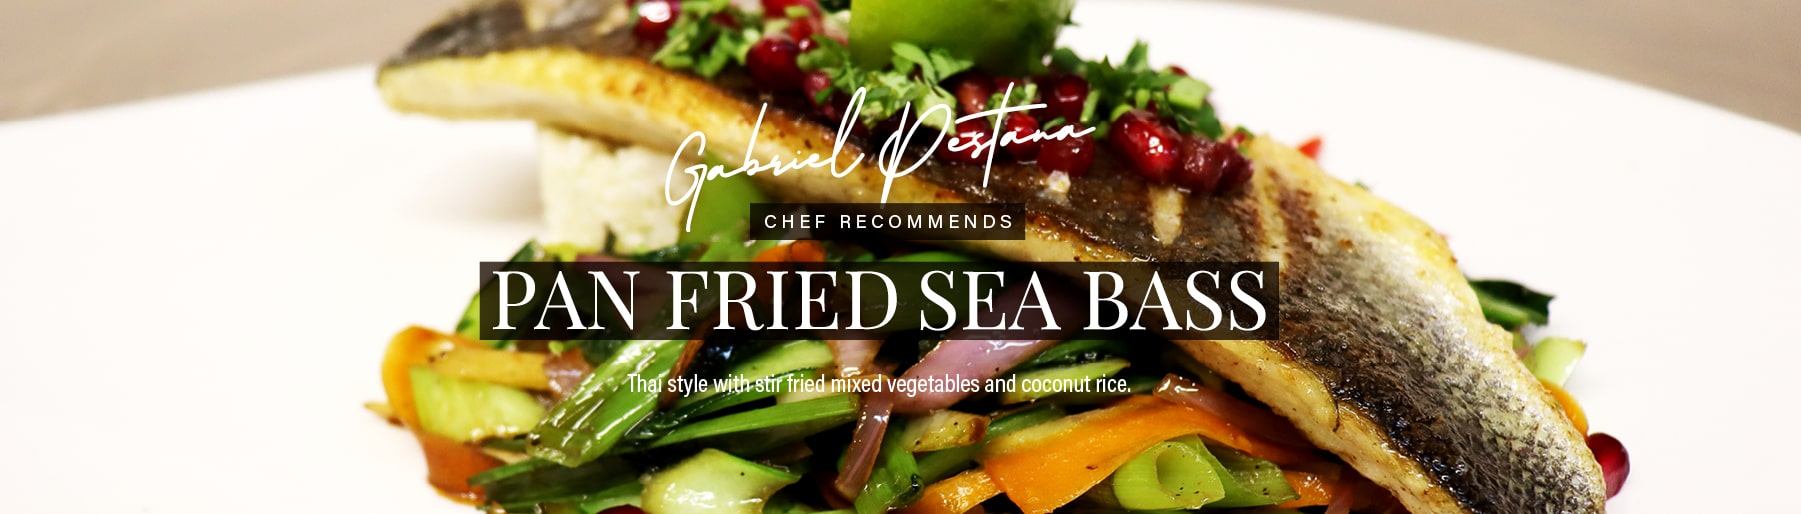 Chef Recommends Pan Fried Sea Bass